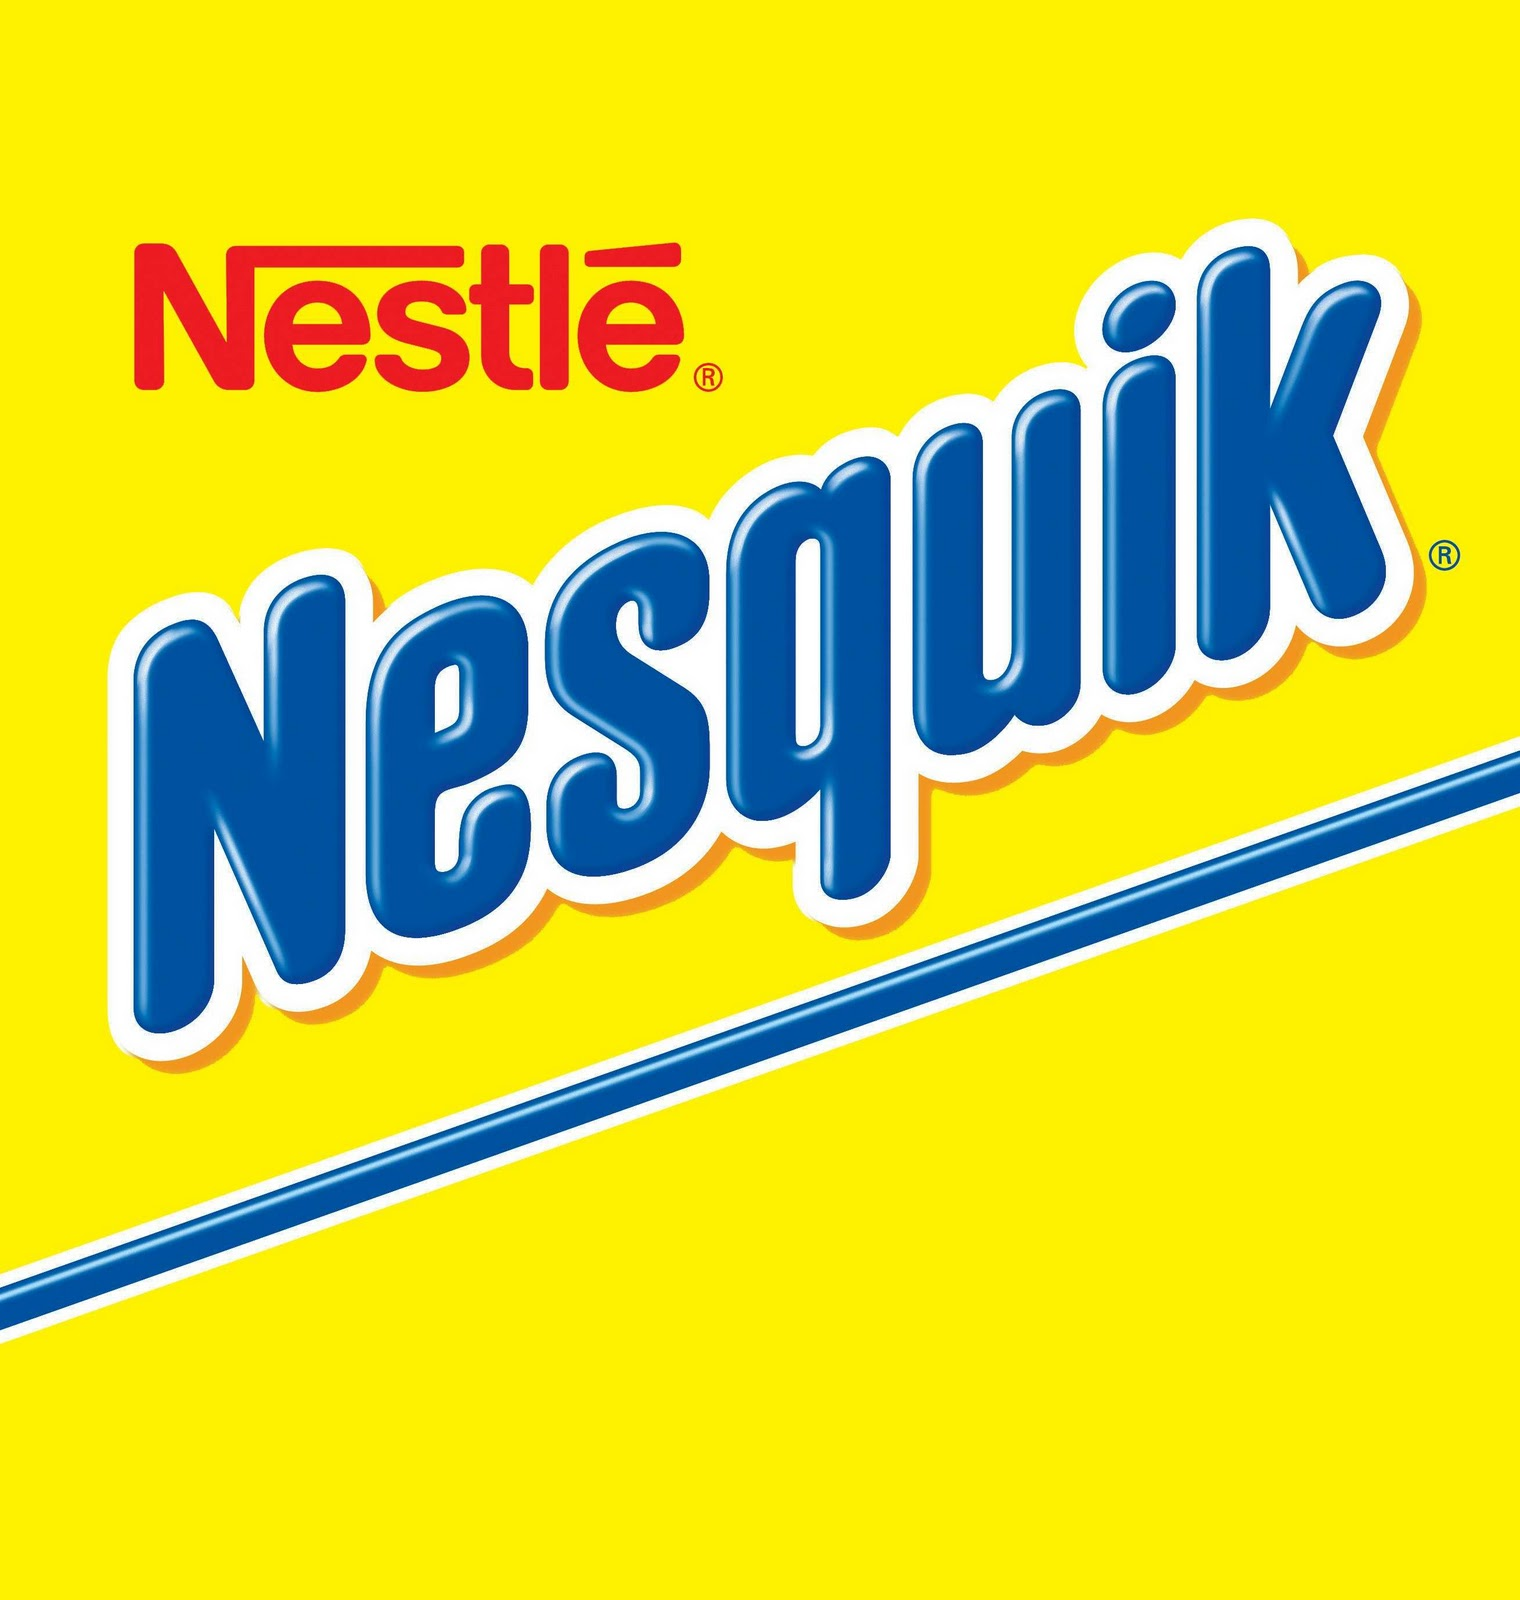 nestle company World renowned brand: it is fortune 500 company and is world's largest food  company.